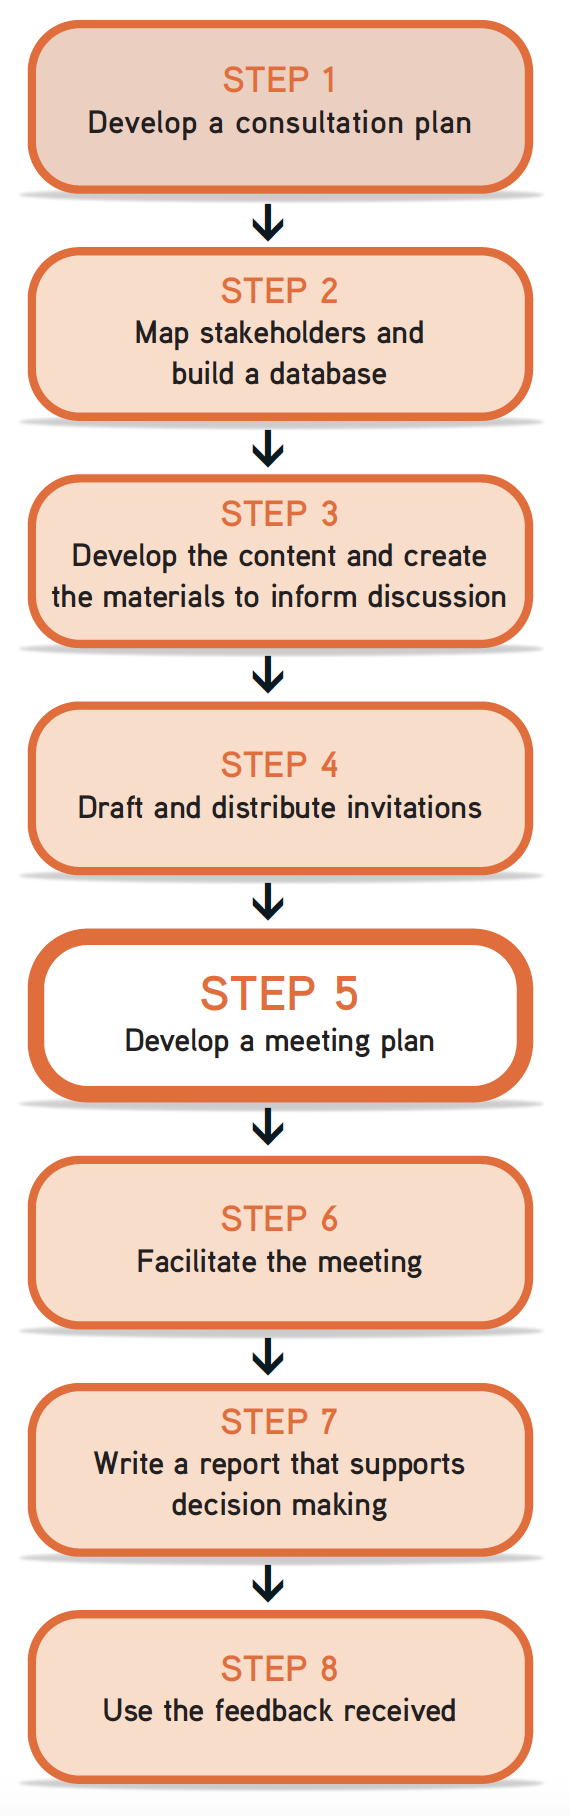 "Picture of steps flow chart, with Step 5 ""develop a meeting plan"" highlighted"